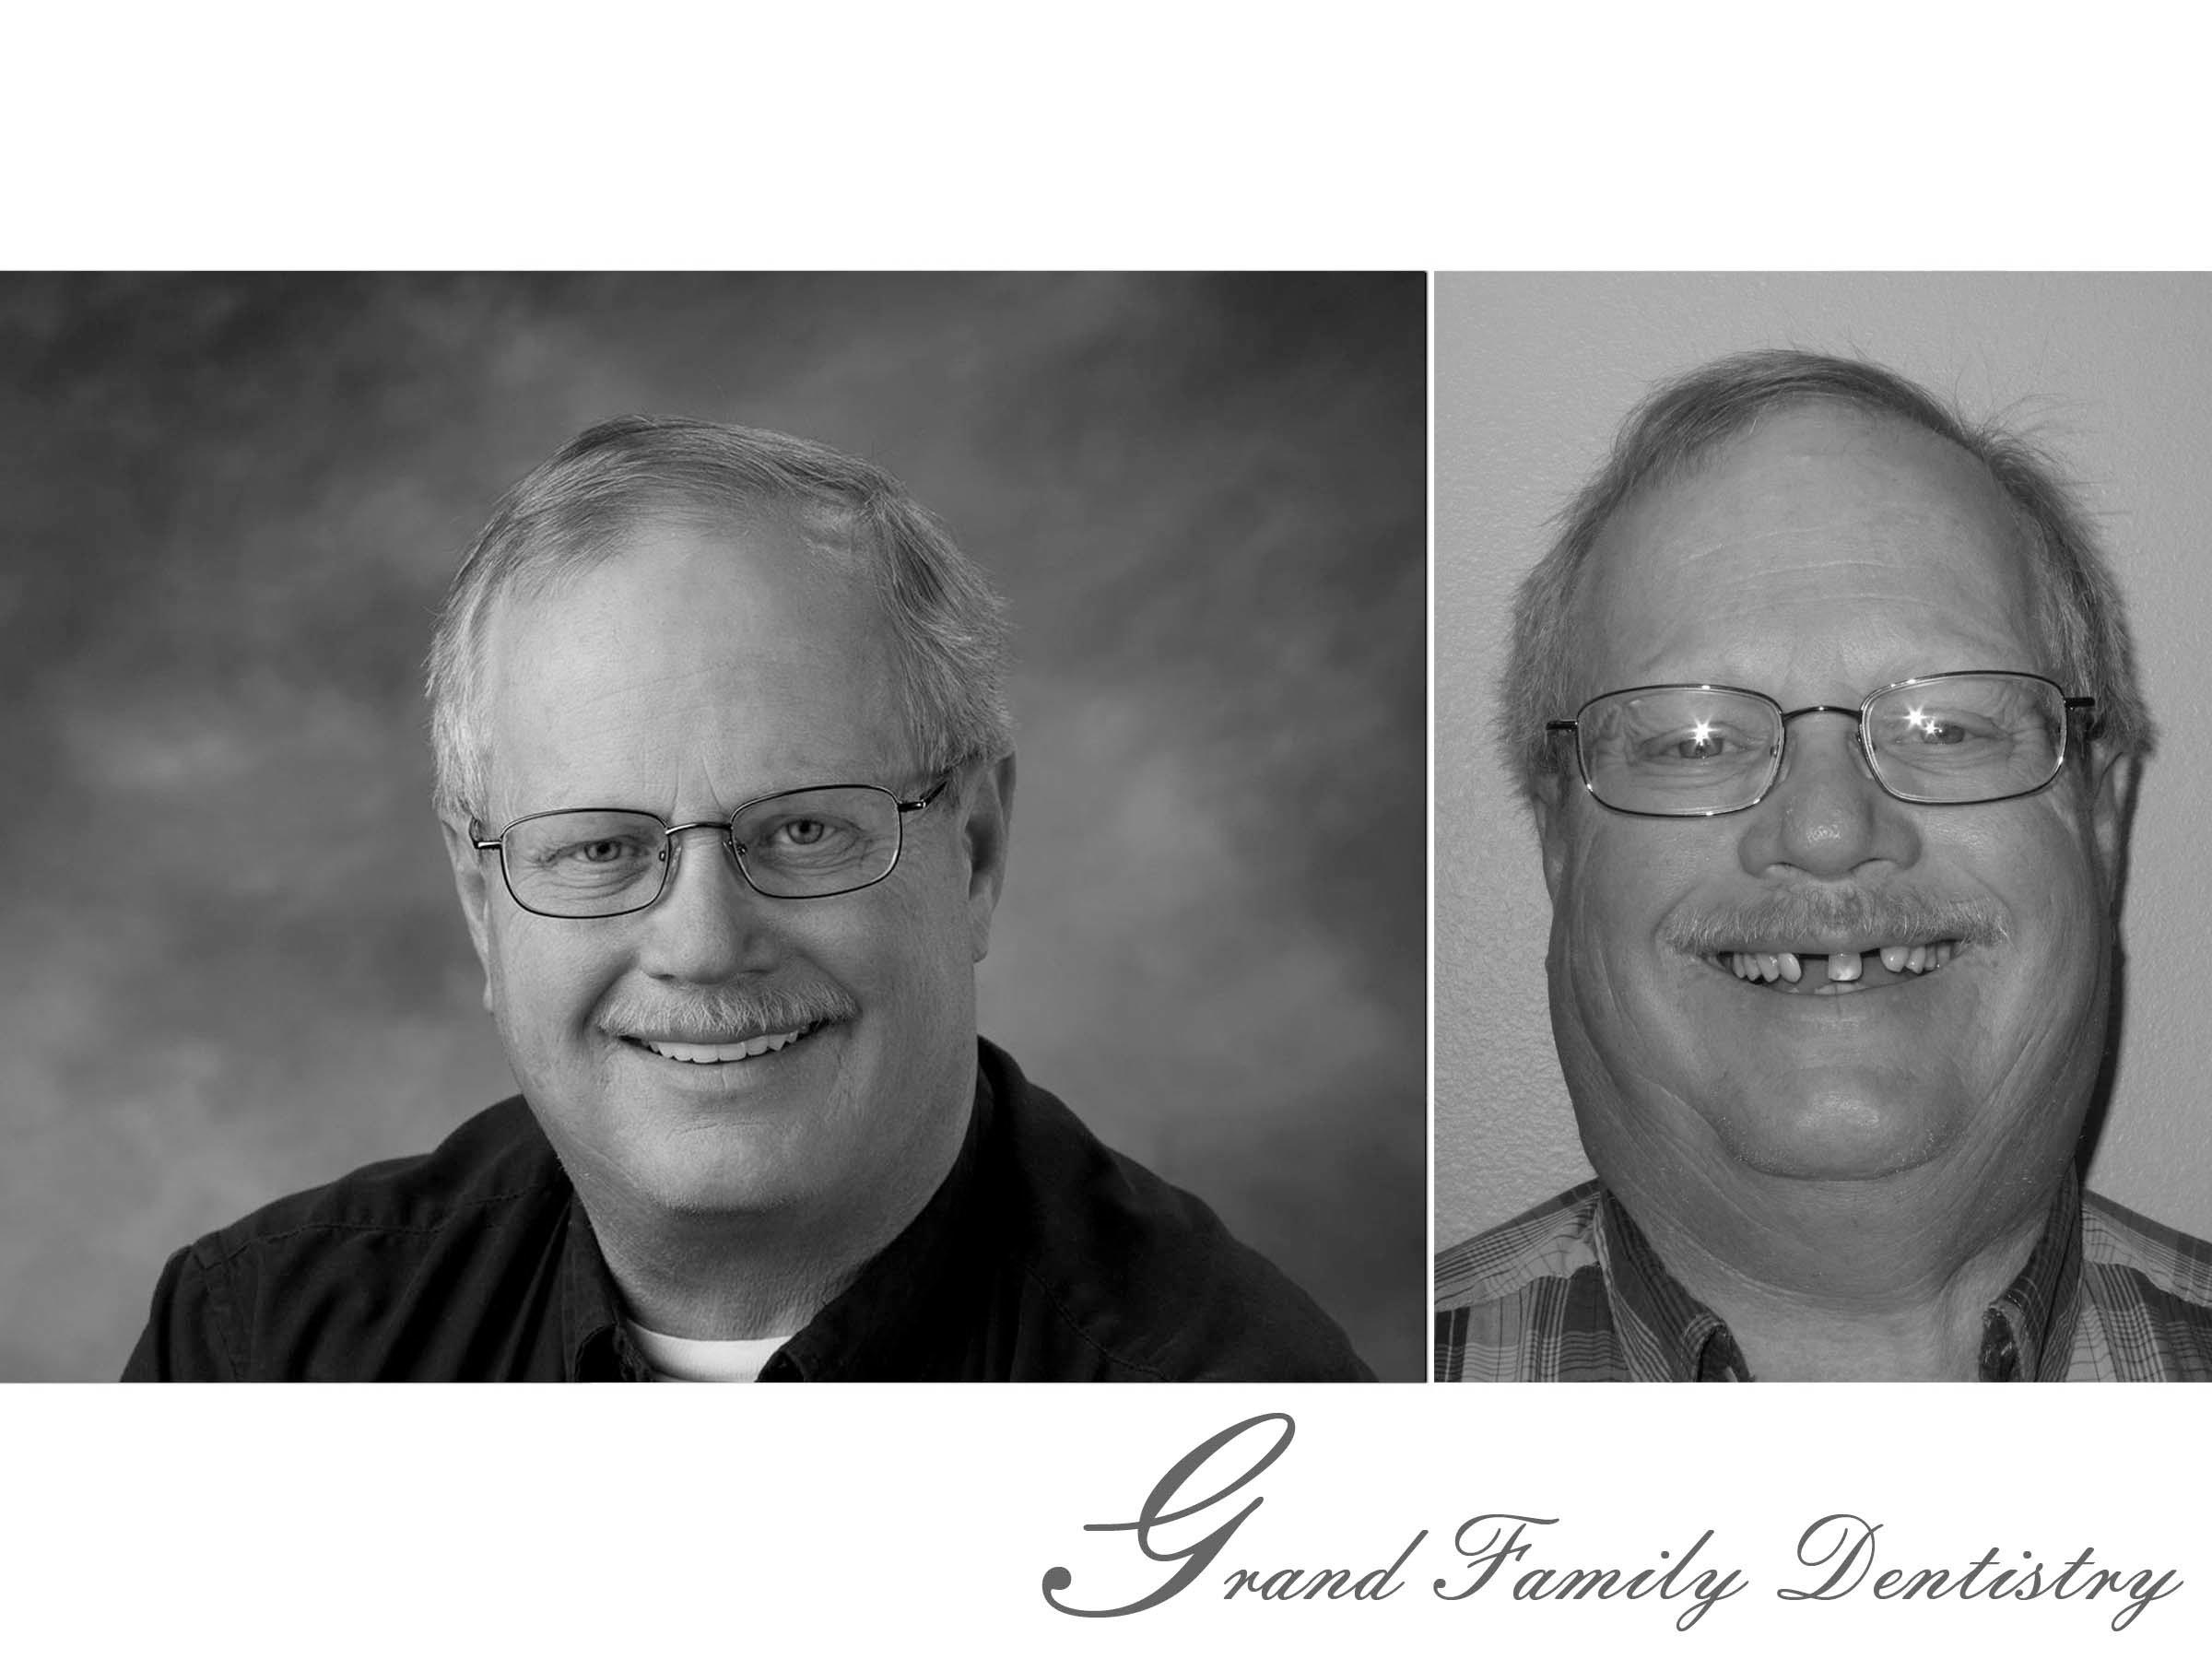 Grand Family Dentistry image 2